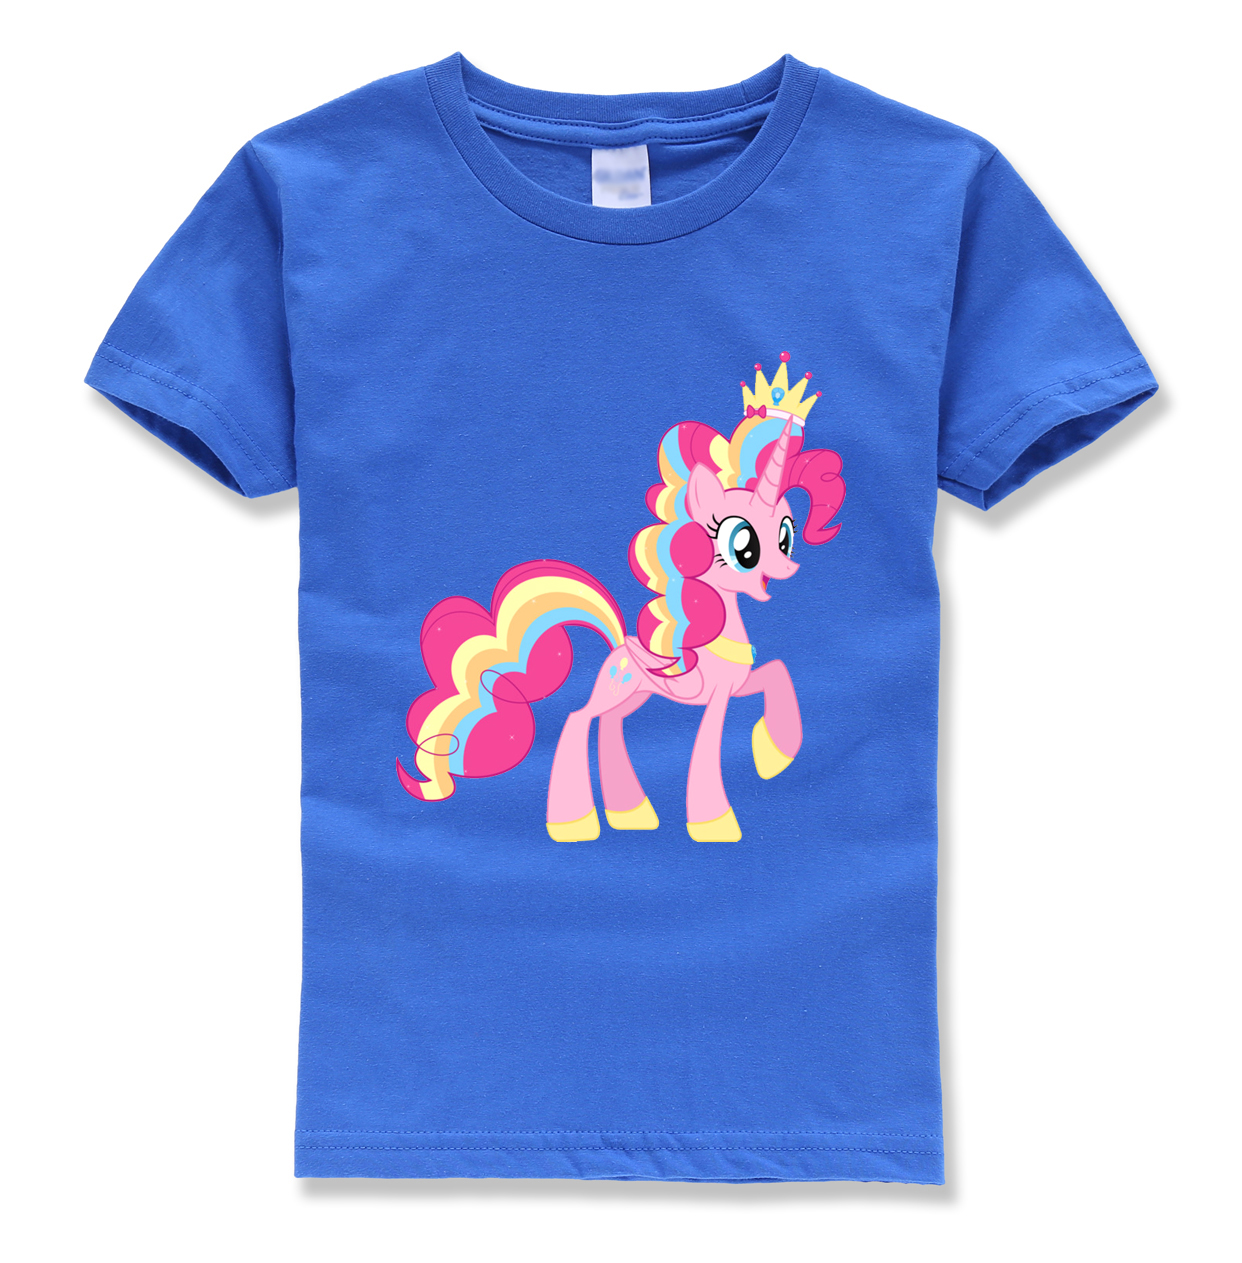 beautiful Crown unicorn tops brand homme stretewear t shirts kids short sleece harajuku casual o neck t-shirt children shirts цена и фото